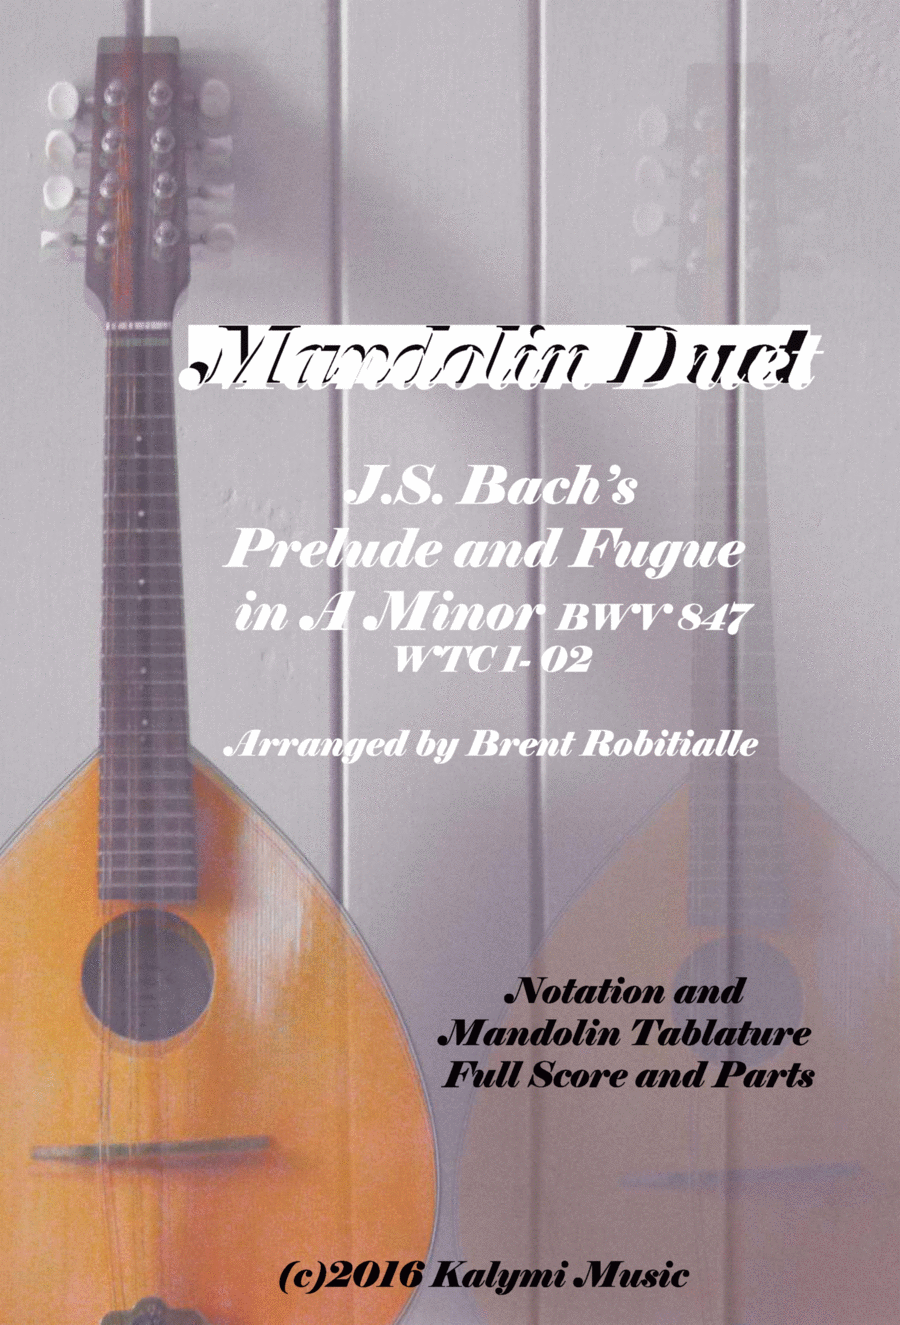 Mandolin Duet - J.S. Bach - Prelude and Fugue in A Minor